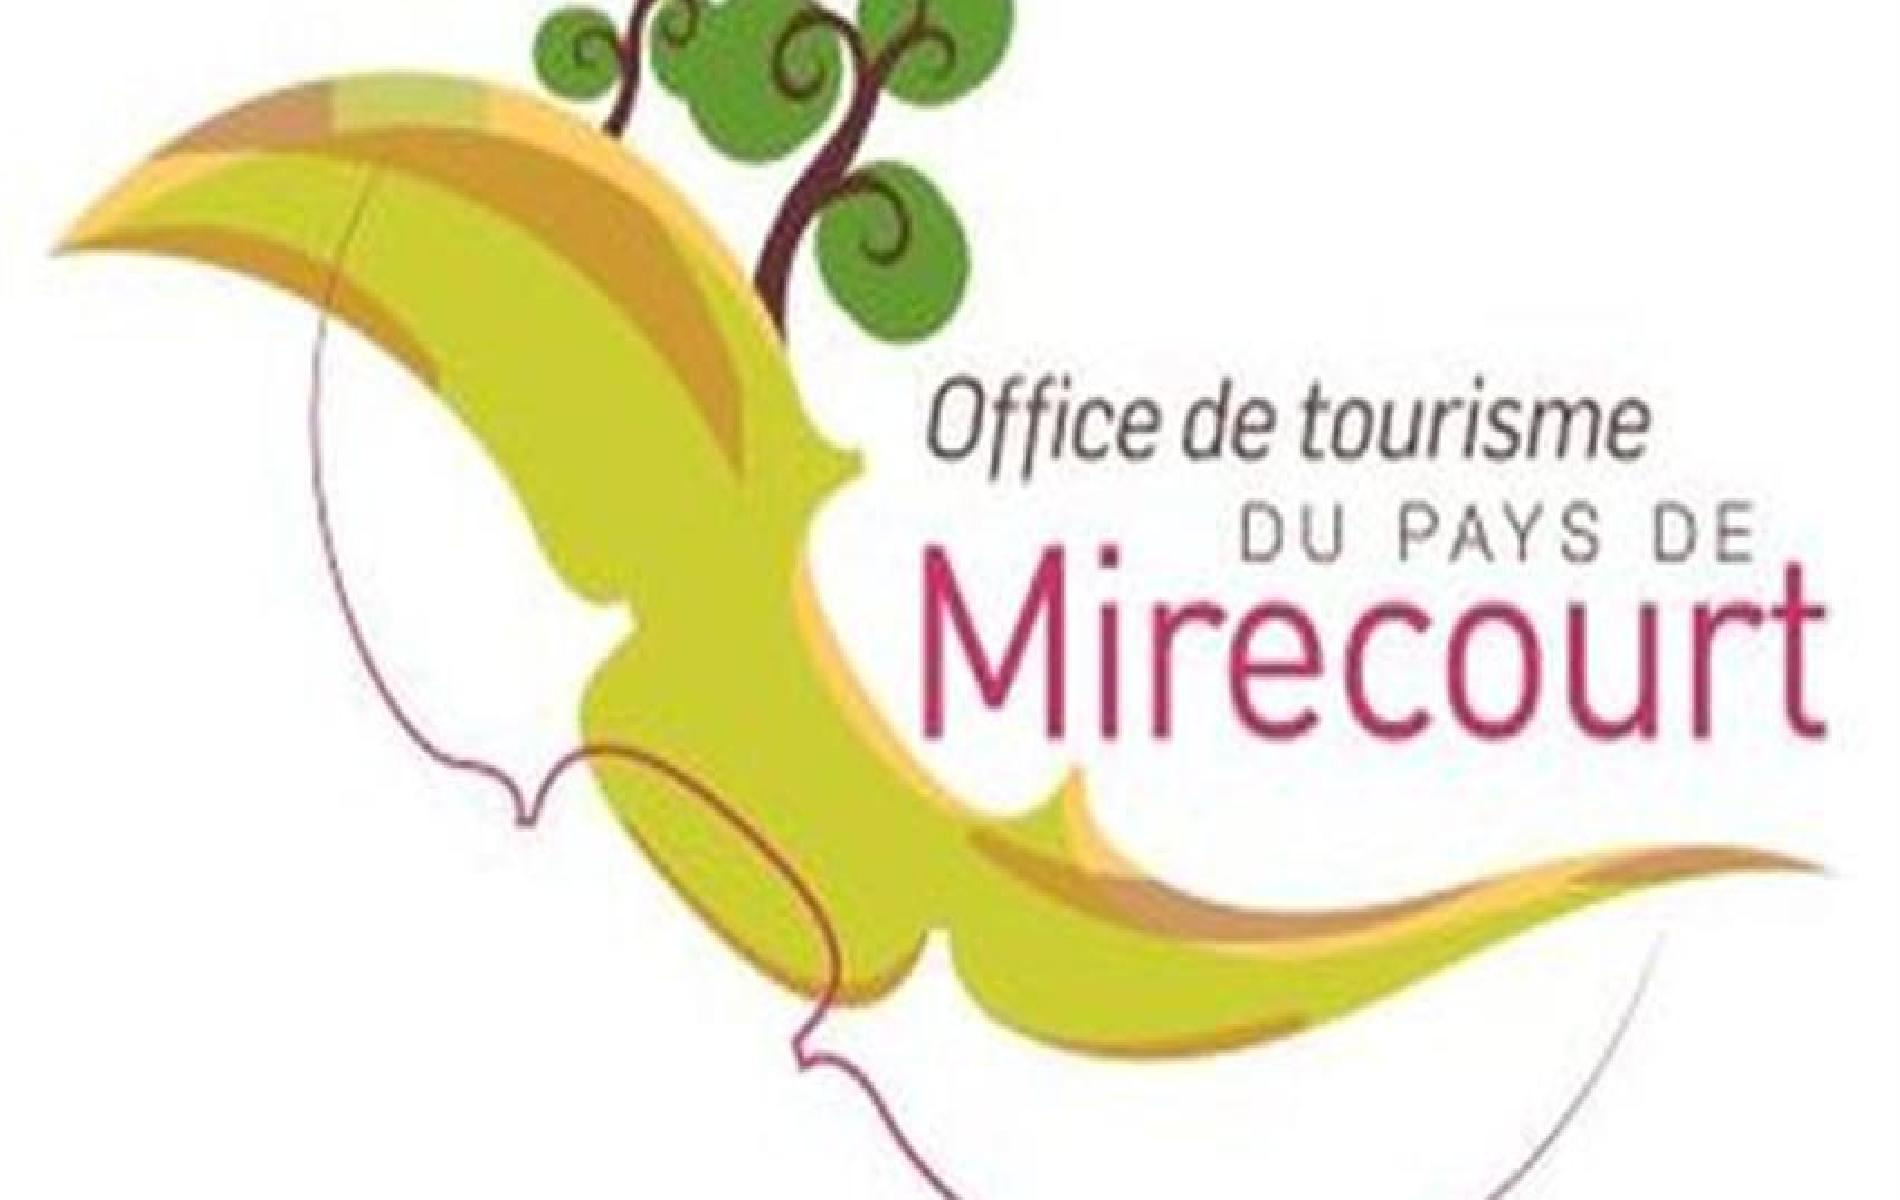 The Mirecourt Tourist Office